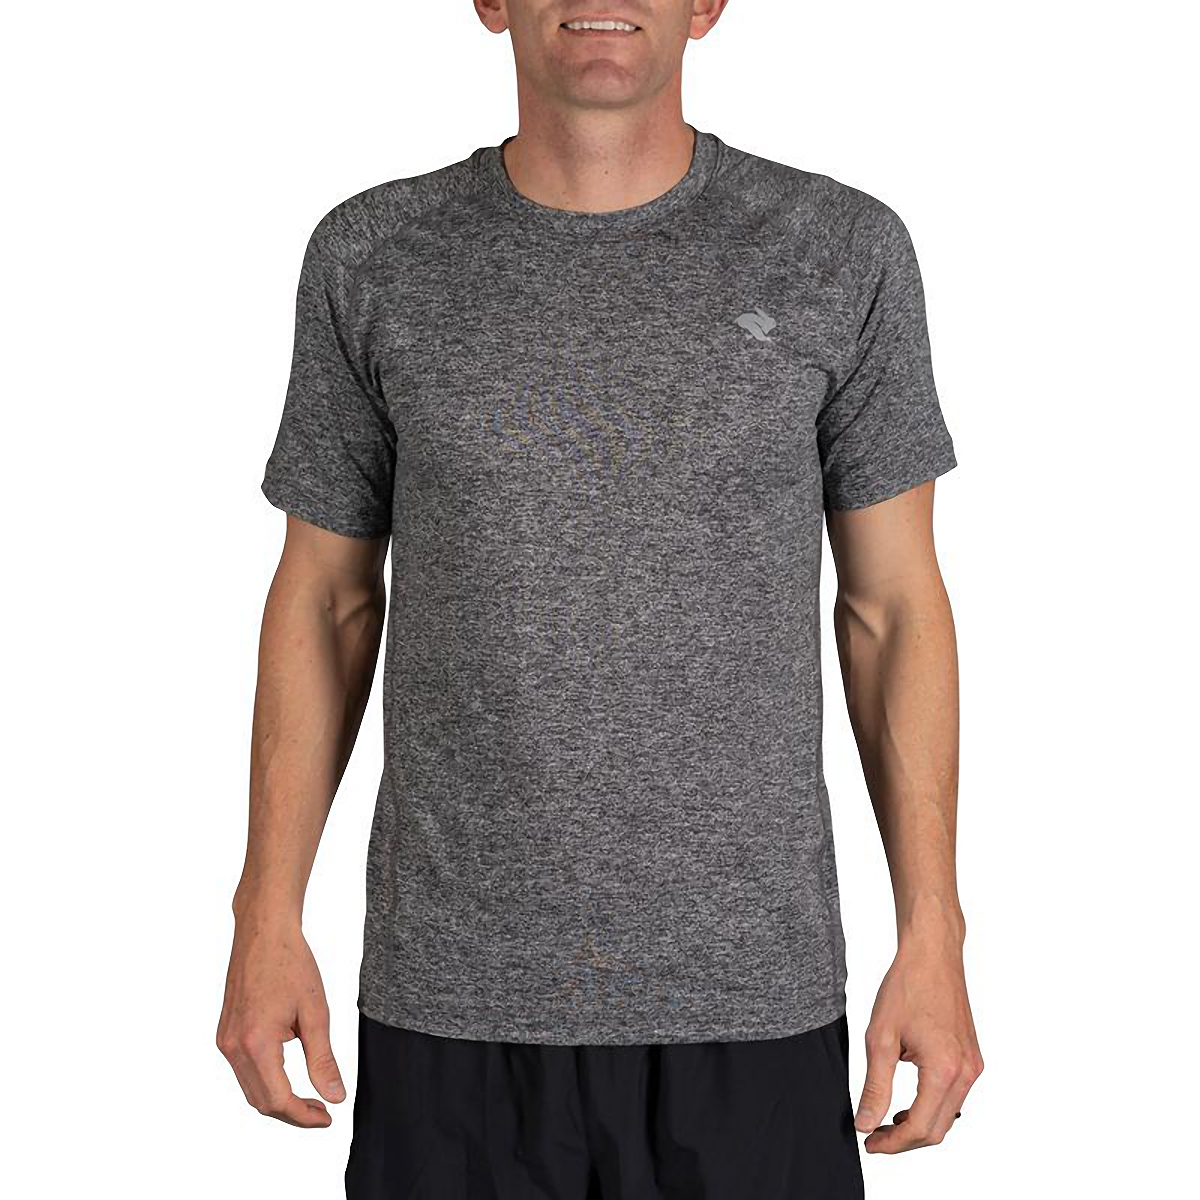 Men's Rabbit EZ Short Sleeve Tee - Color: Charcoal Heather - Size: XS, Charcoal Heather, large, image 1